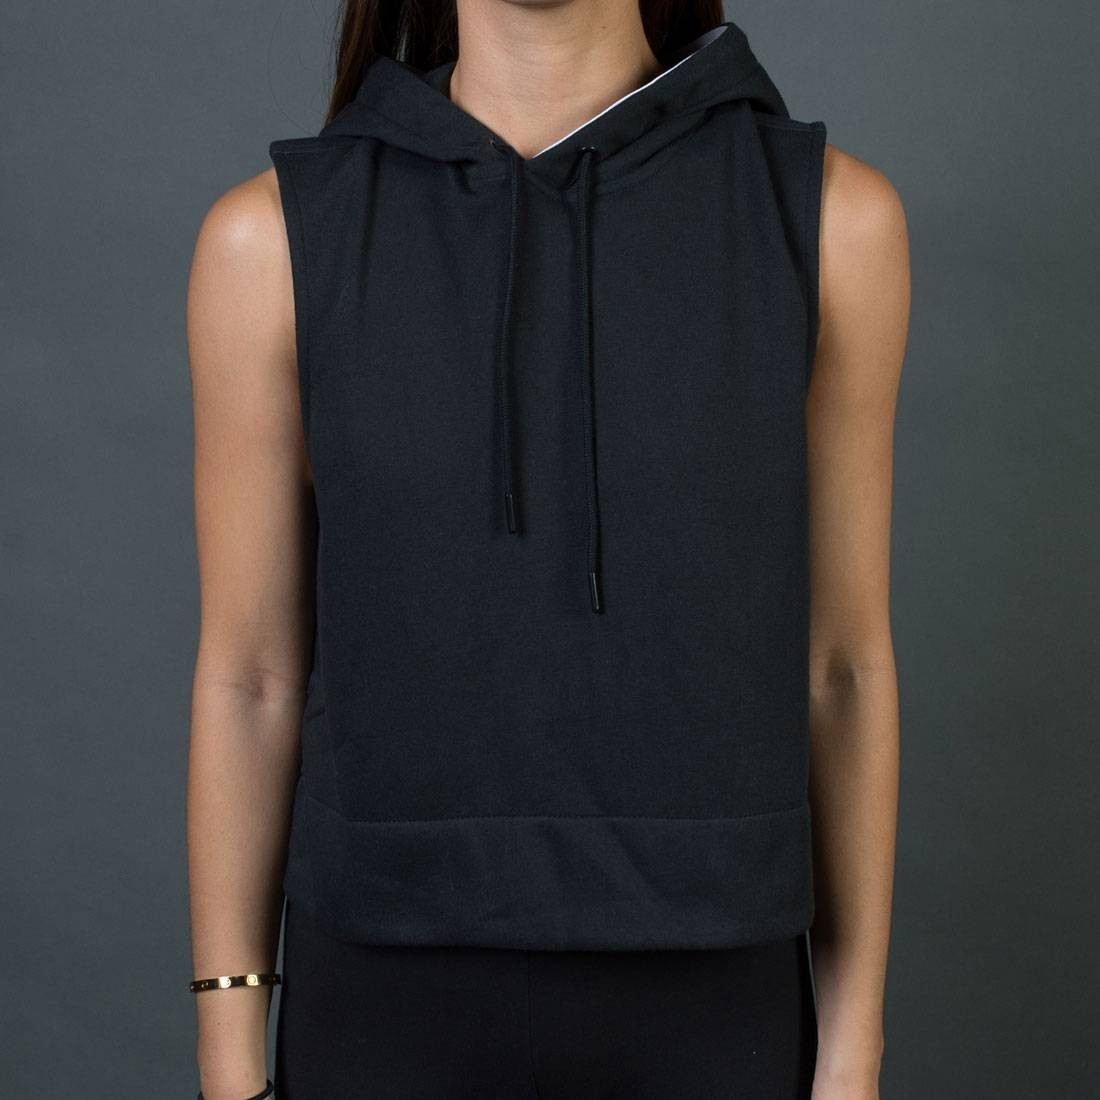 Adidas Women Sleeveless Pullover Hoodie (black)